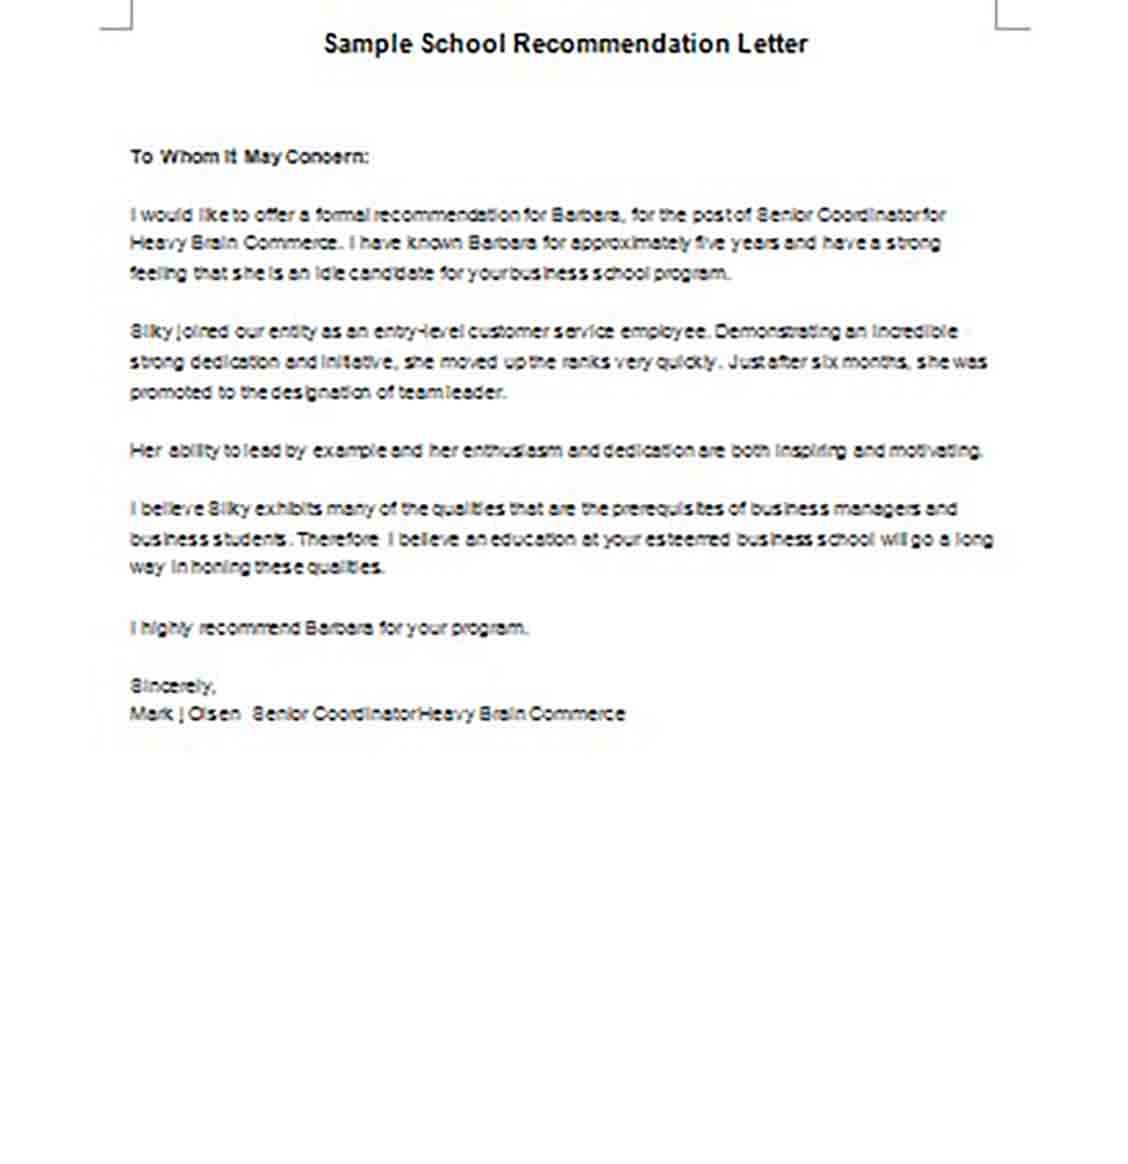 School Recommendation Letter templates Example in Word